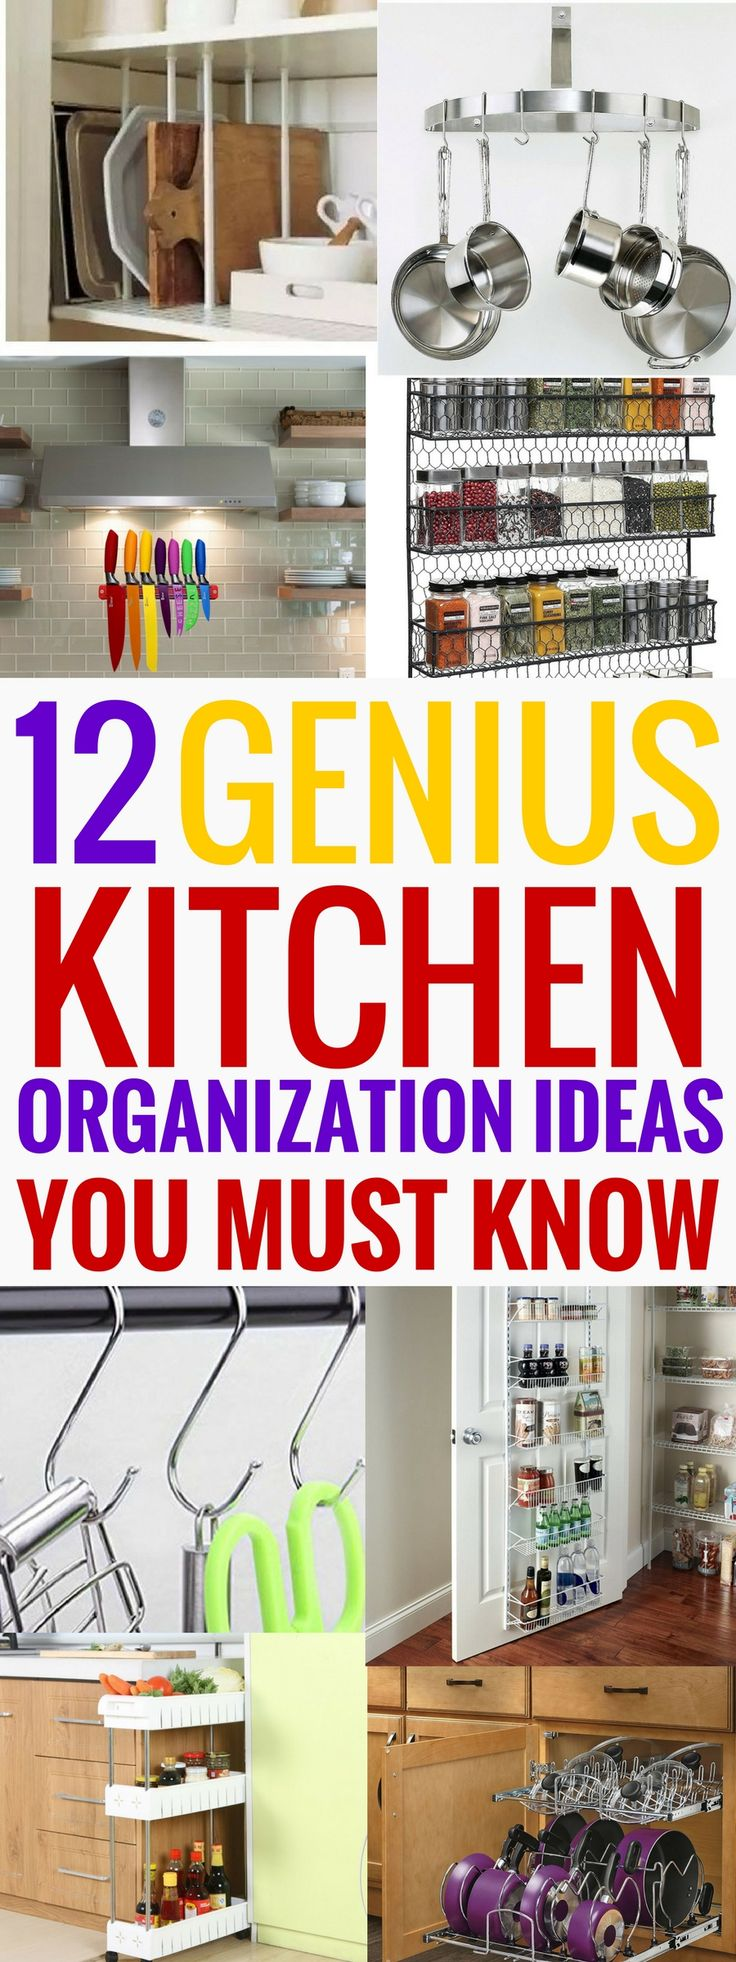 These kitchen organization ideas are THE BEST! I'm so glad I found these great organization ideas now I can declutter my kitchen and keep everything in order and easily accessible! Definitely pinning this! #organization